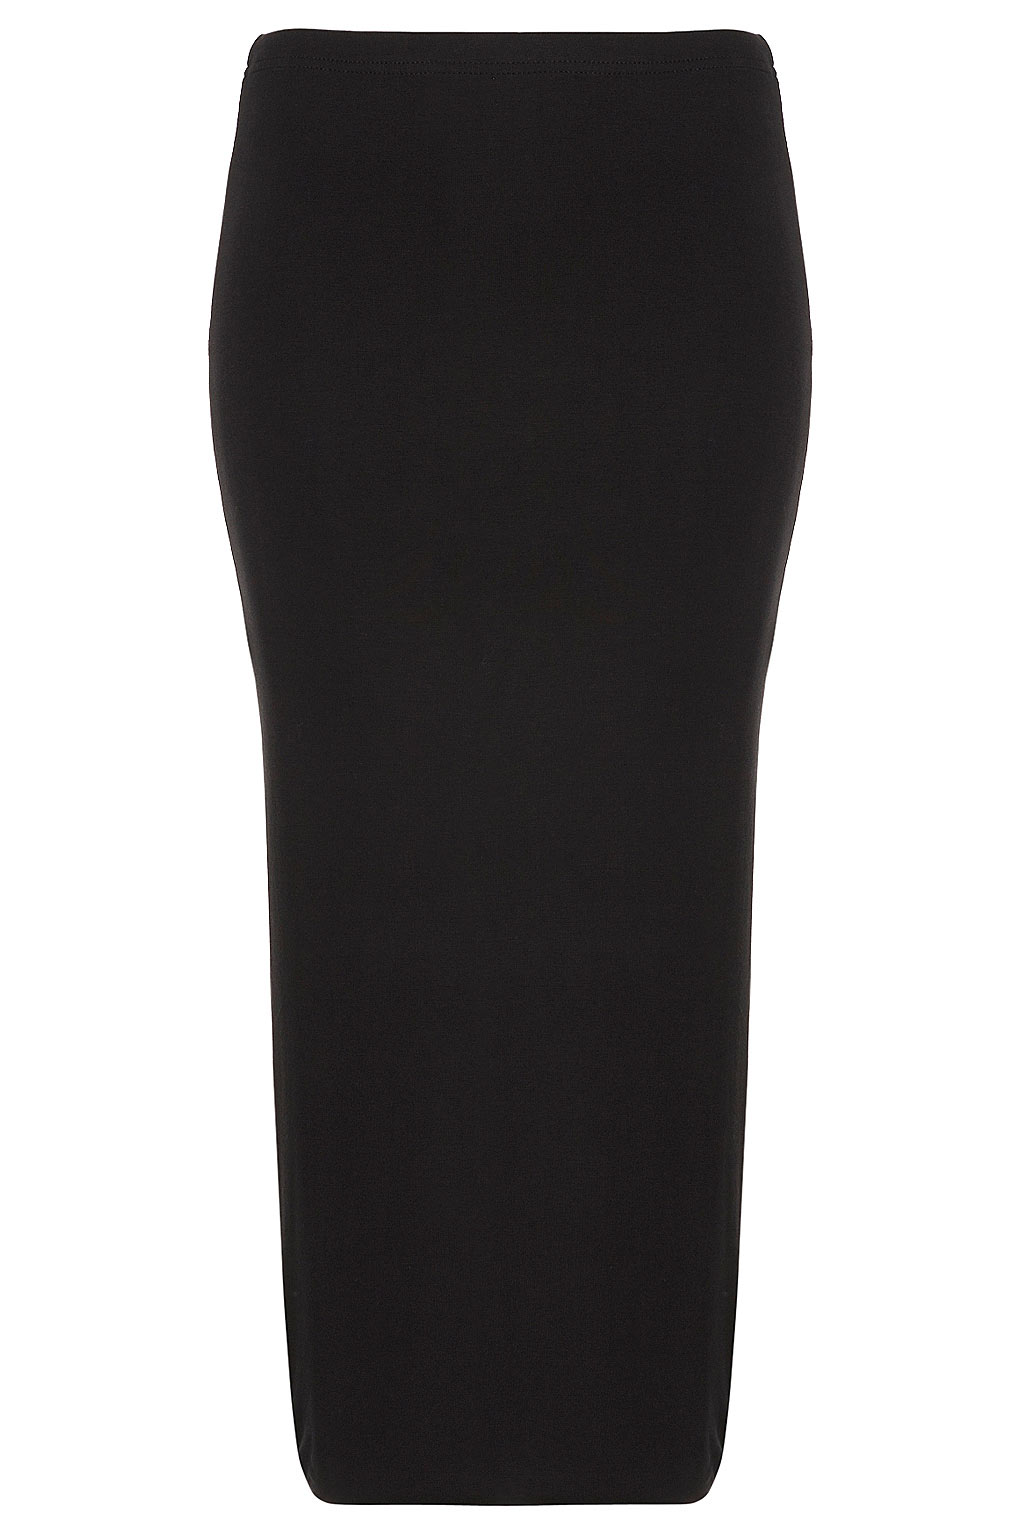 Topshop Black Double Layer Tube Skirt in Black | Lyst